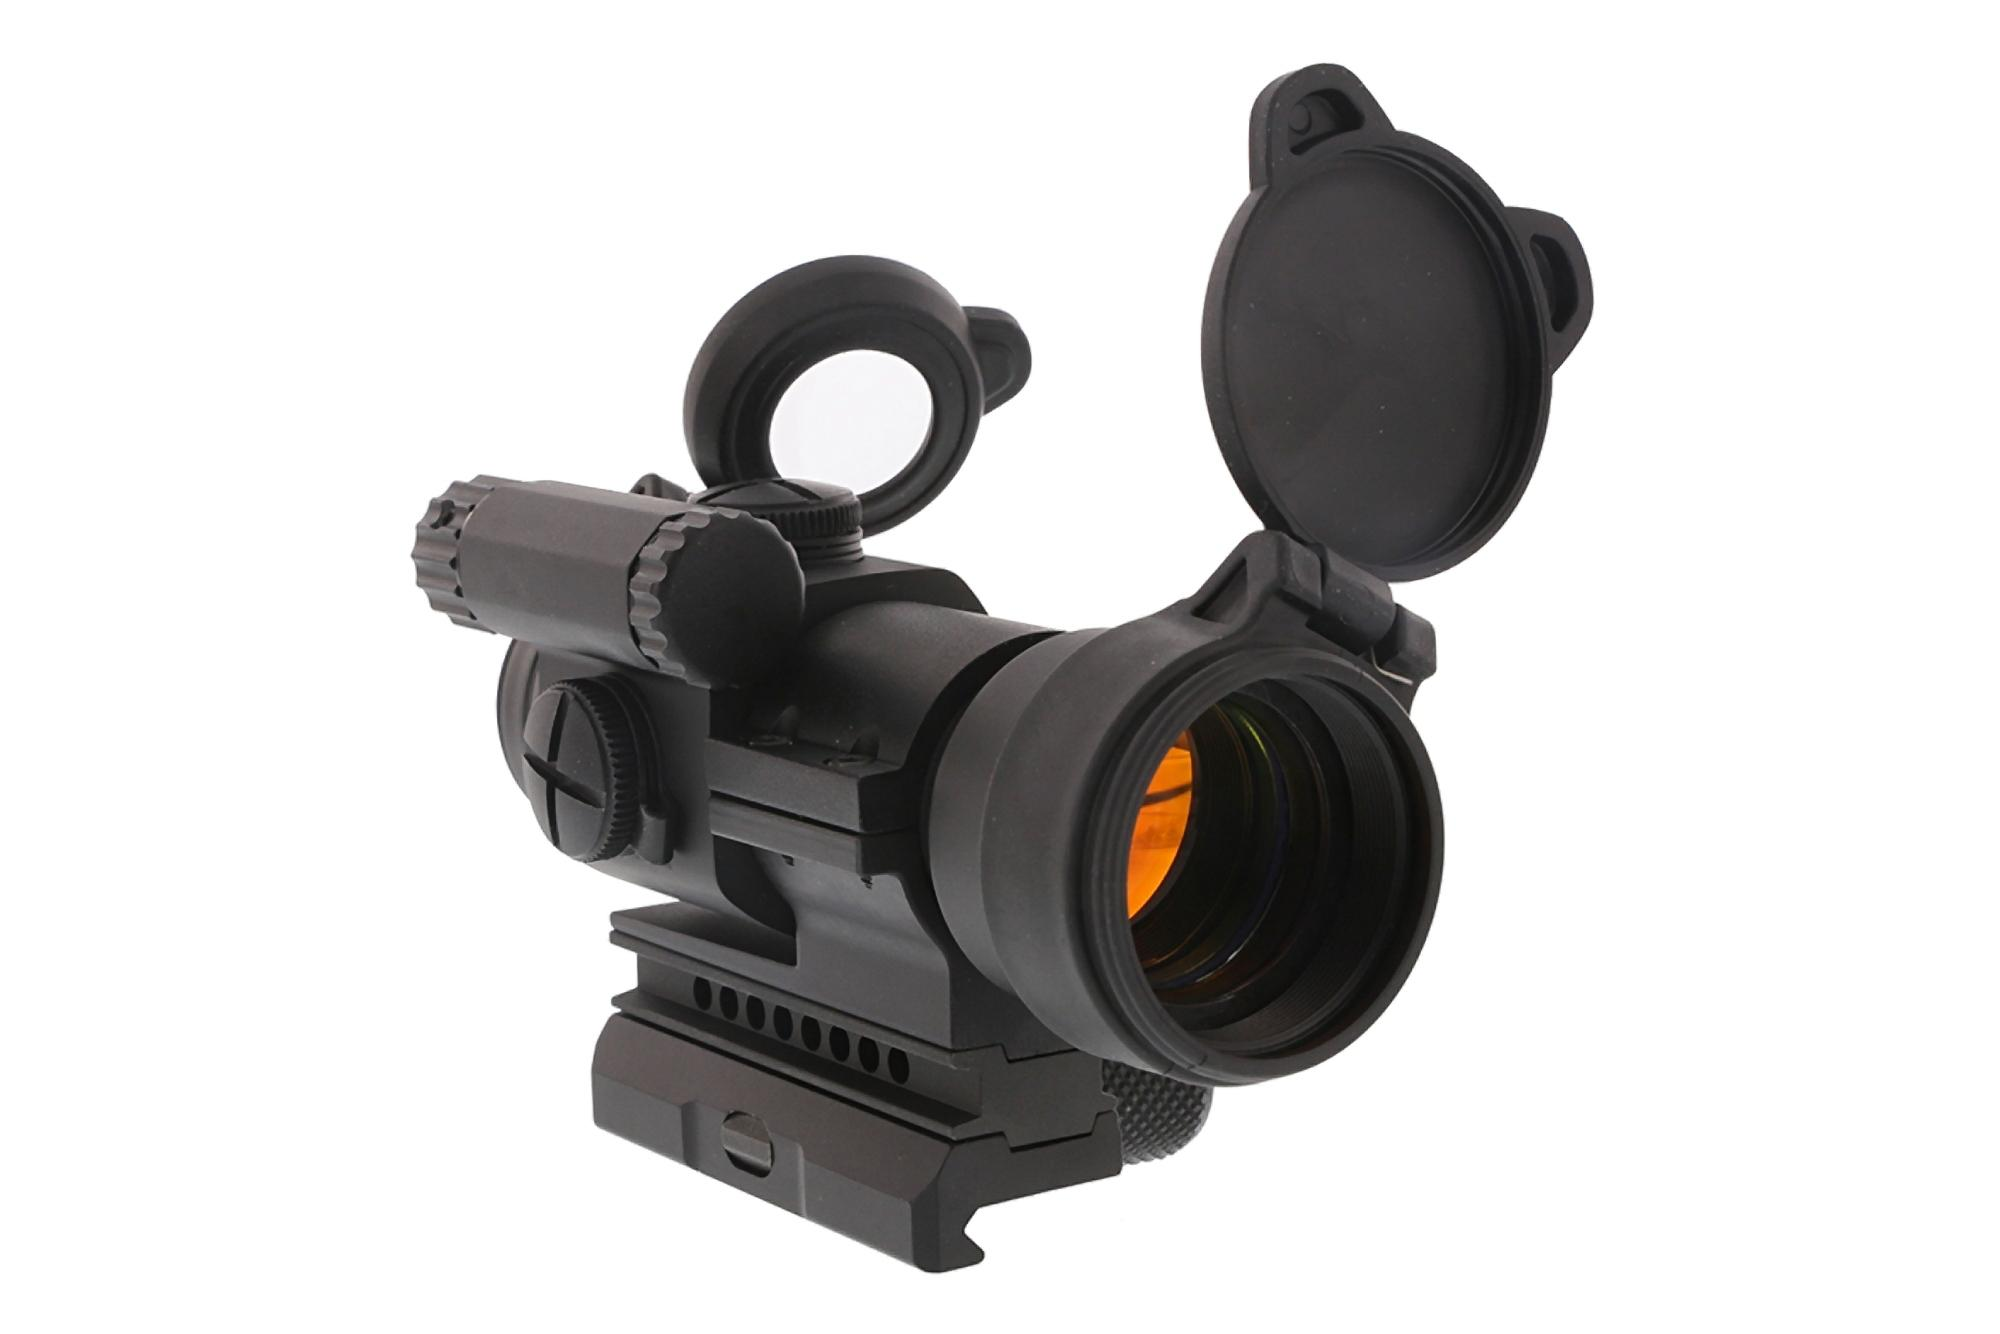 Aimpoint PRO Patrol Rifle Optic